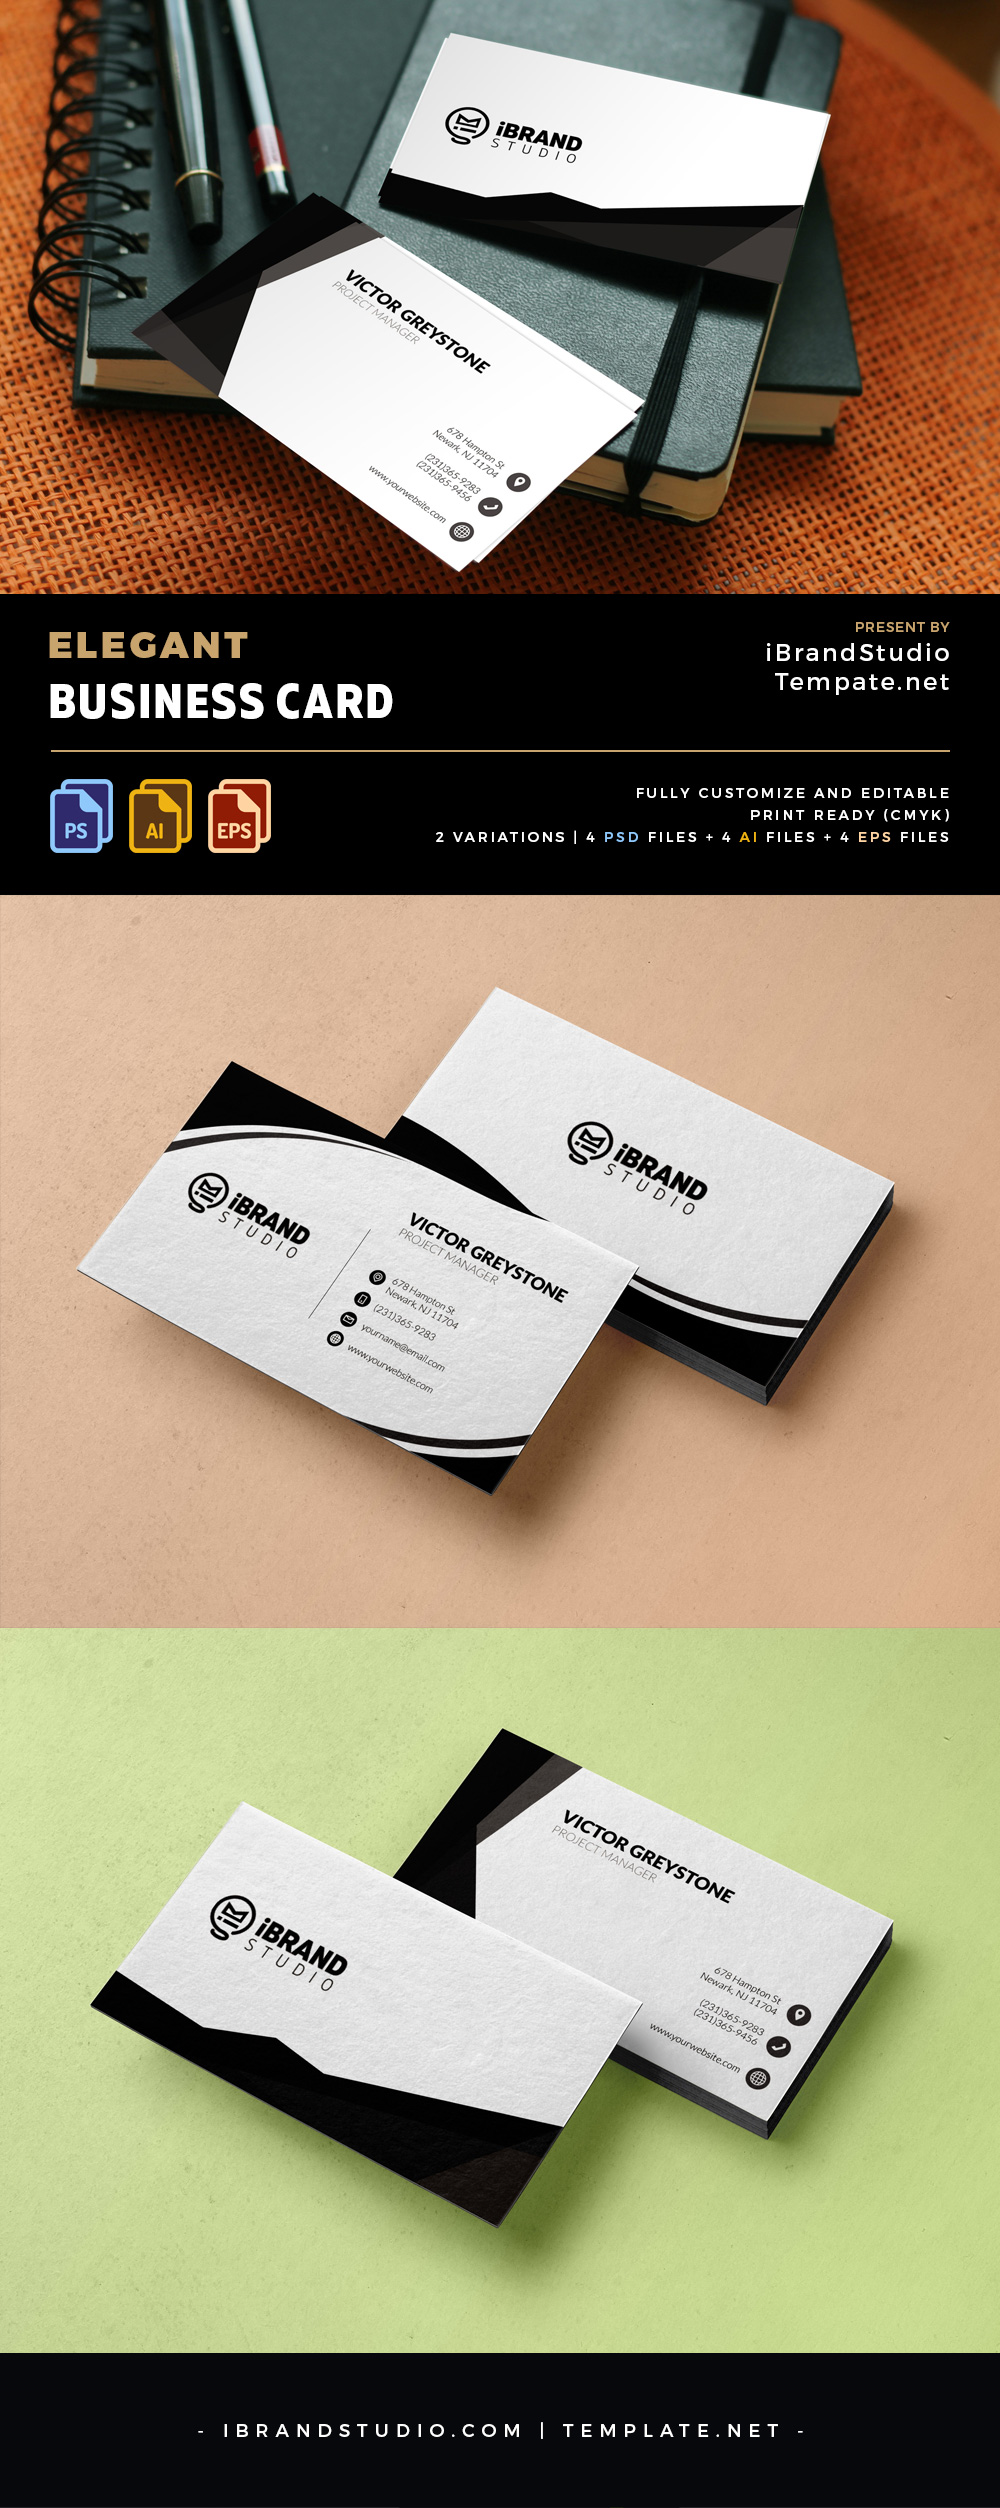 Free Ready-Made Business Card Templates